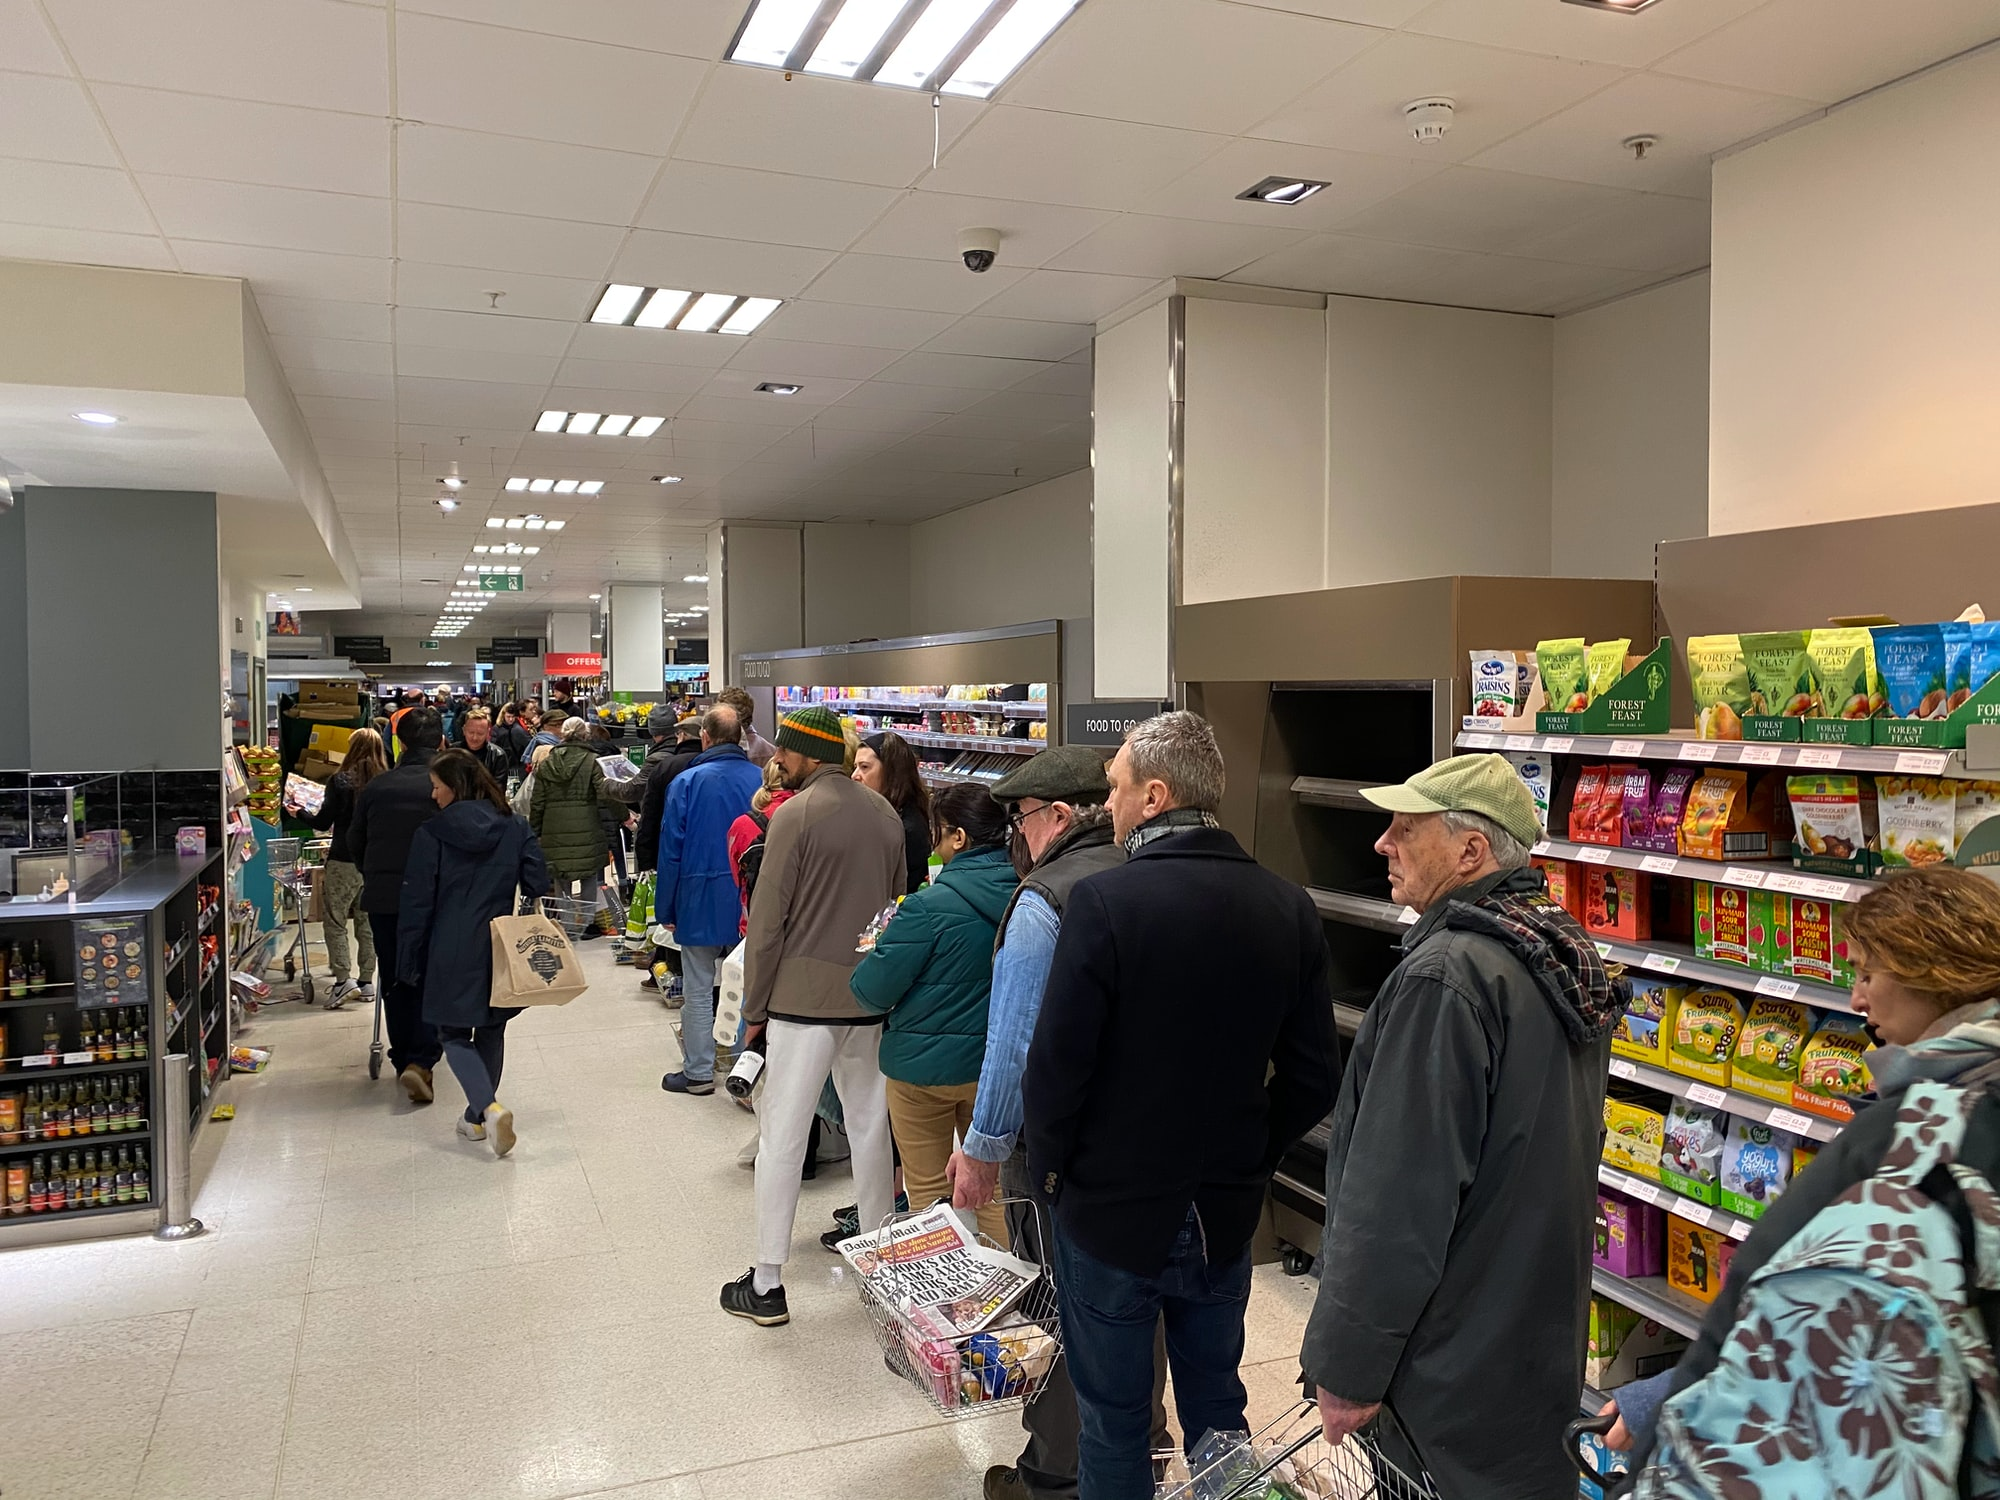 Shoppers patiently wait to pay in Waitrose, as London prepares to lockdown